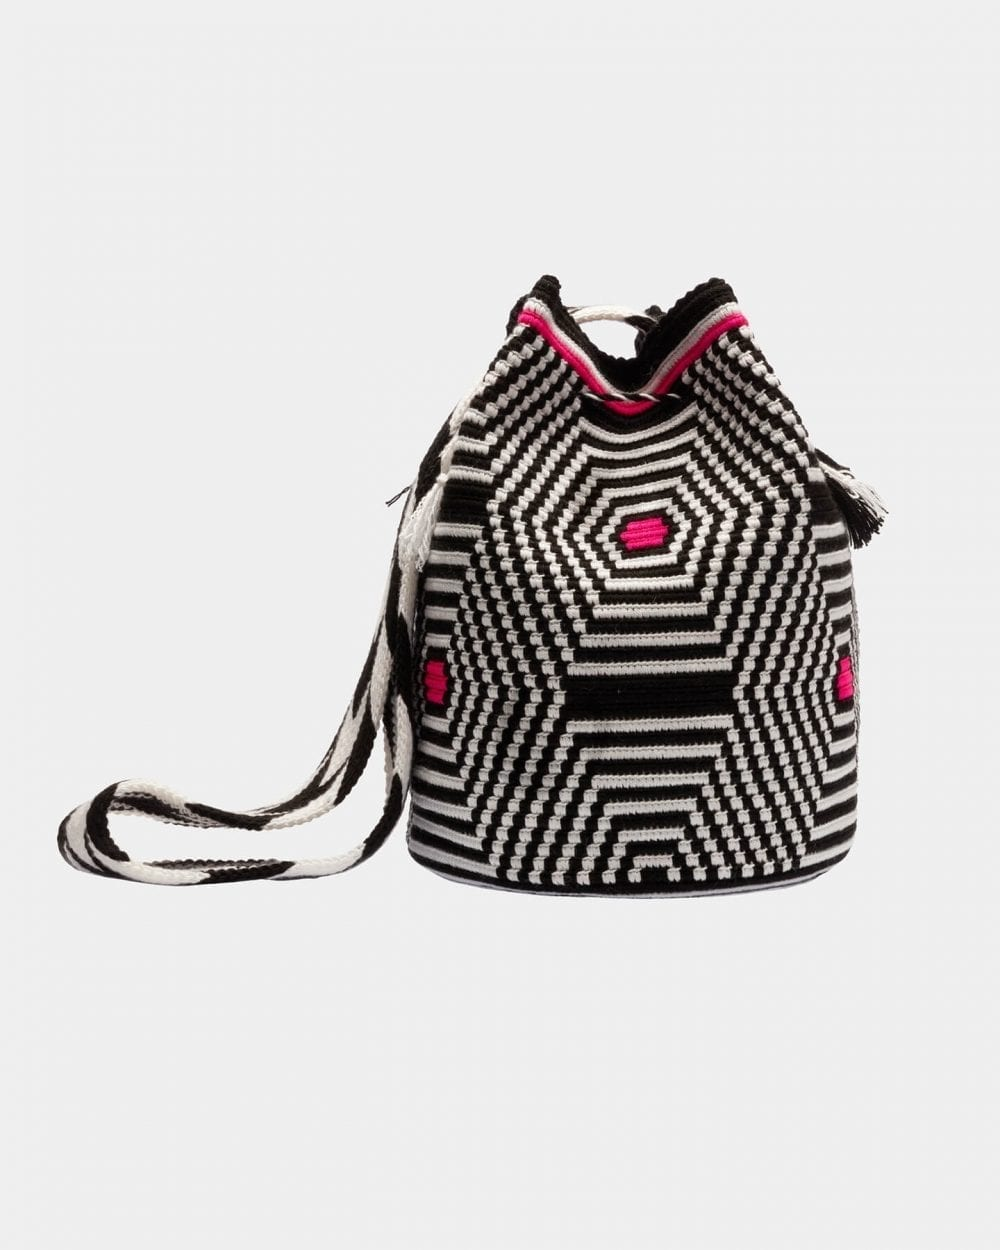 Lea Black & White shoulder bag by ALLBYB Design, Philadelphia